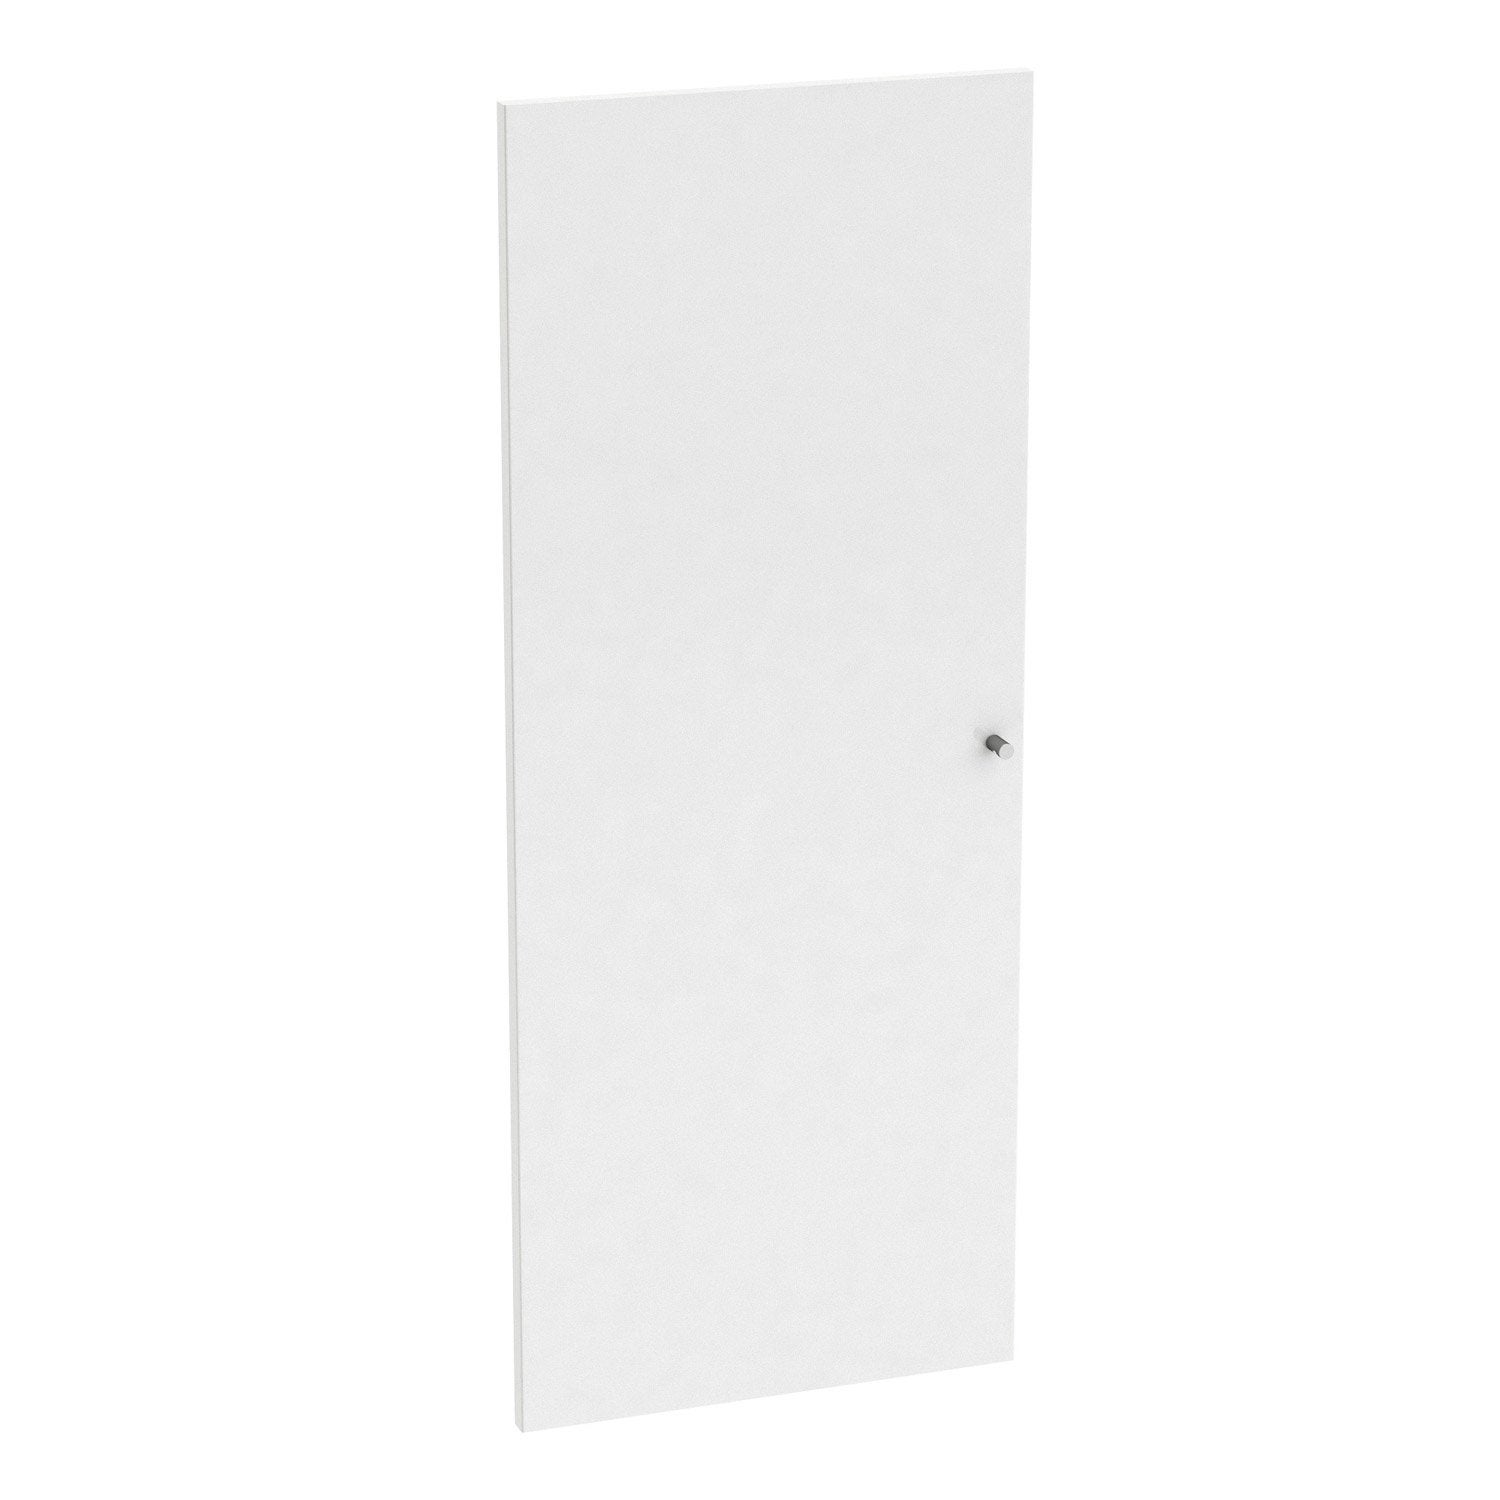 Porte battante spaceo home 100 x 40 x 1 6 cm blanc for Miroir 100 x 40